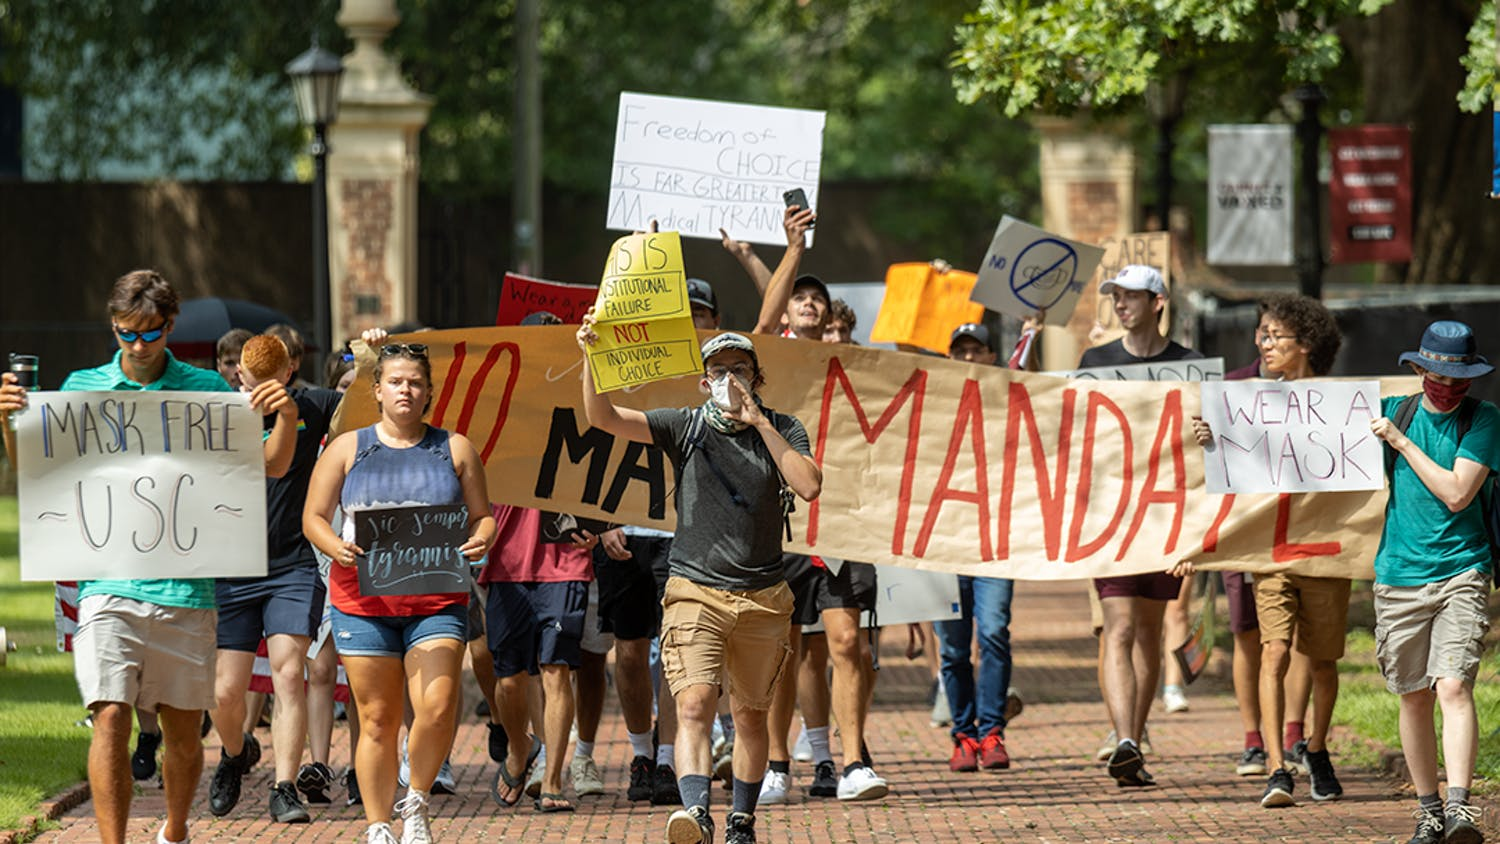 The USC Turning Point USA chapter and the Carolina Socialists protest on the Horseshoe over the mask mandate. The mask mandate was put in place by interim university President Harris Pastides on Aug. 18, 2021.